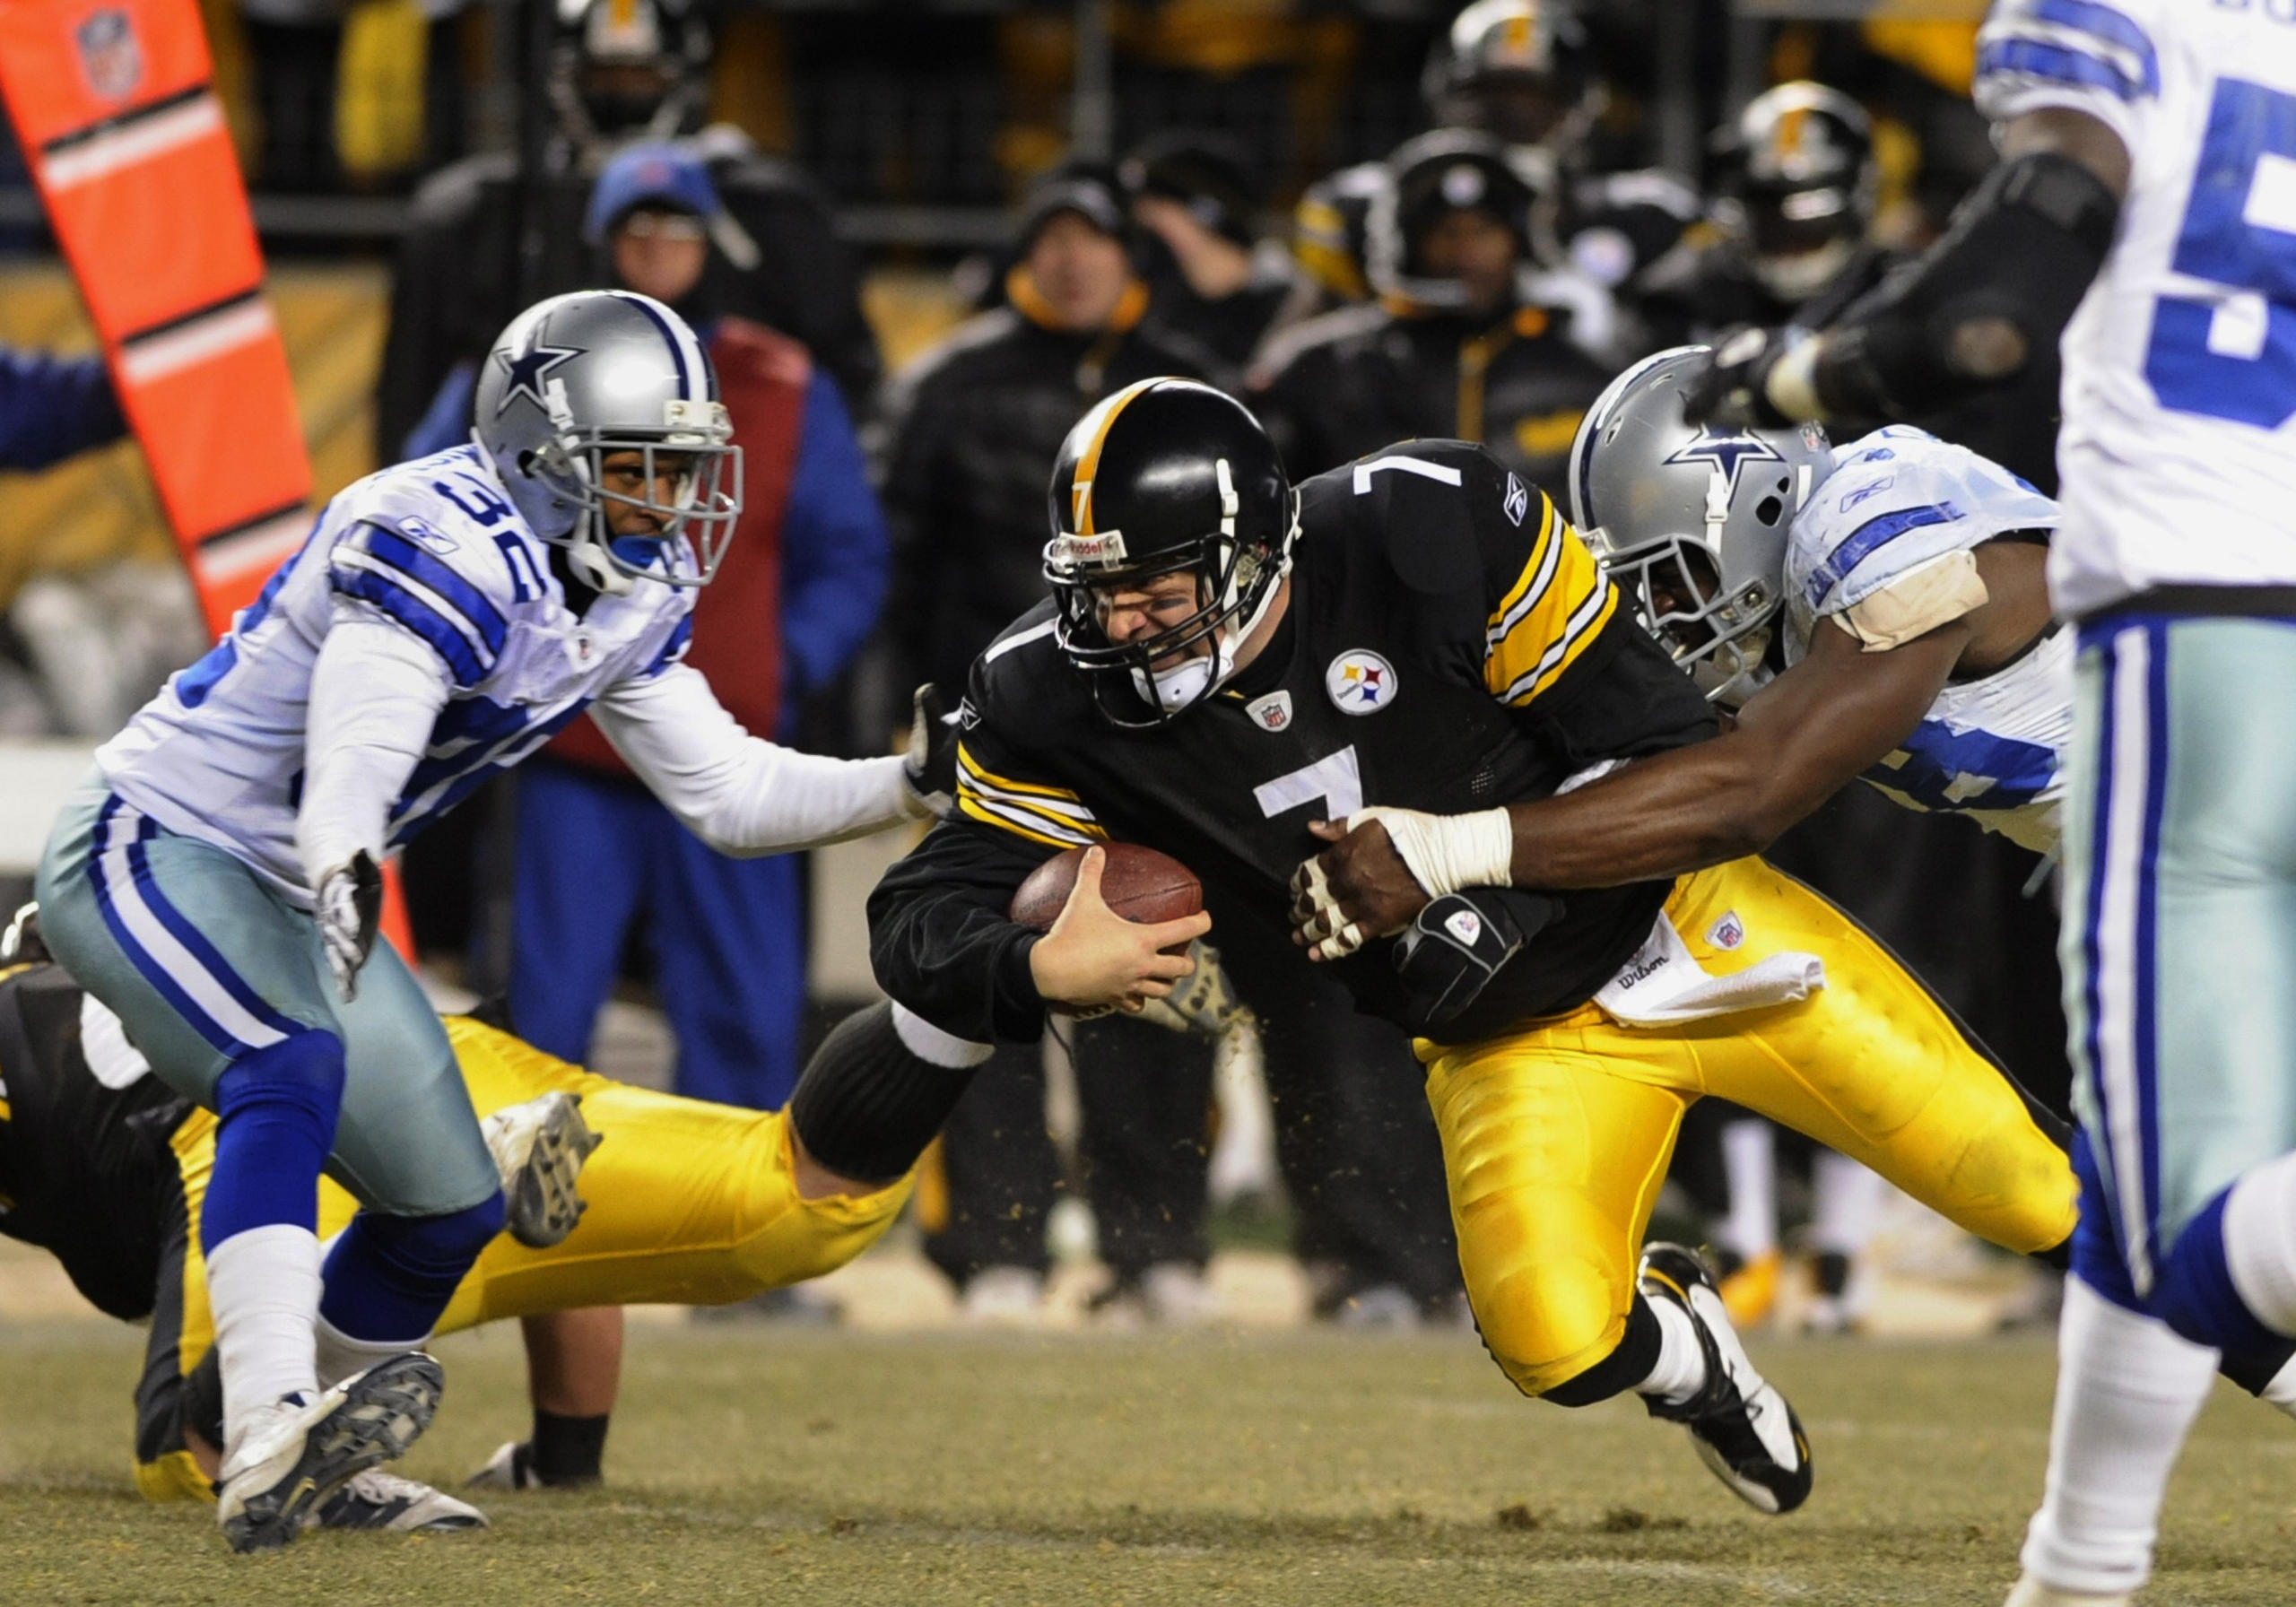 Quarterback Ben Roethlisberger (7) of the Pittsburgh Steelers dives for a gain against the Dallas Cowboys  at Heinz Field on December 7, 2008 in Pittsburgh, Pennsylvania.  (AP Photo / Al Messerschmidt)